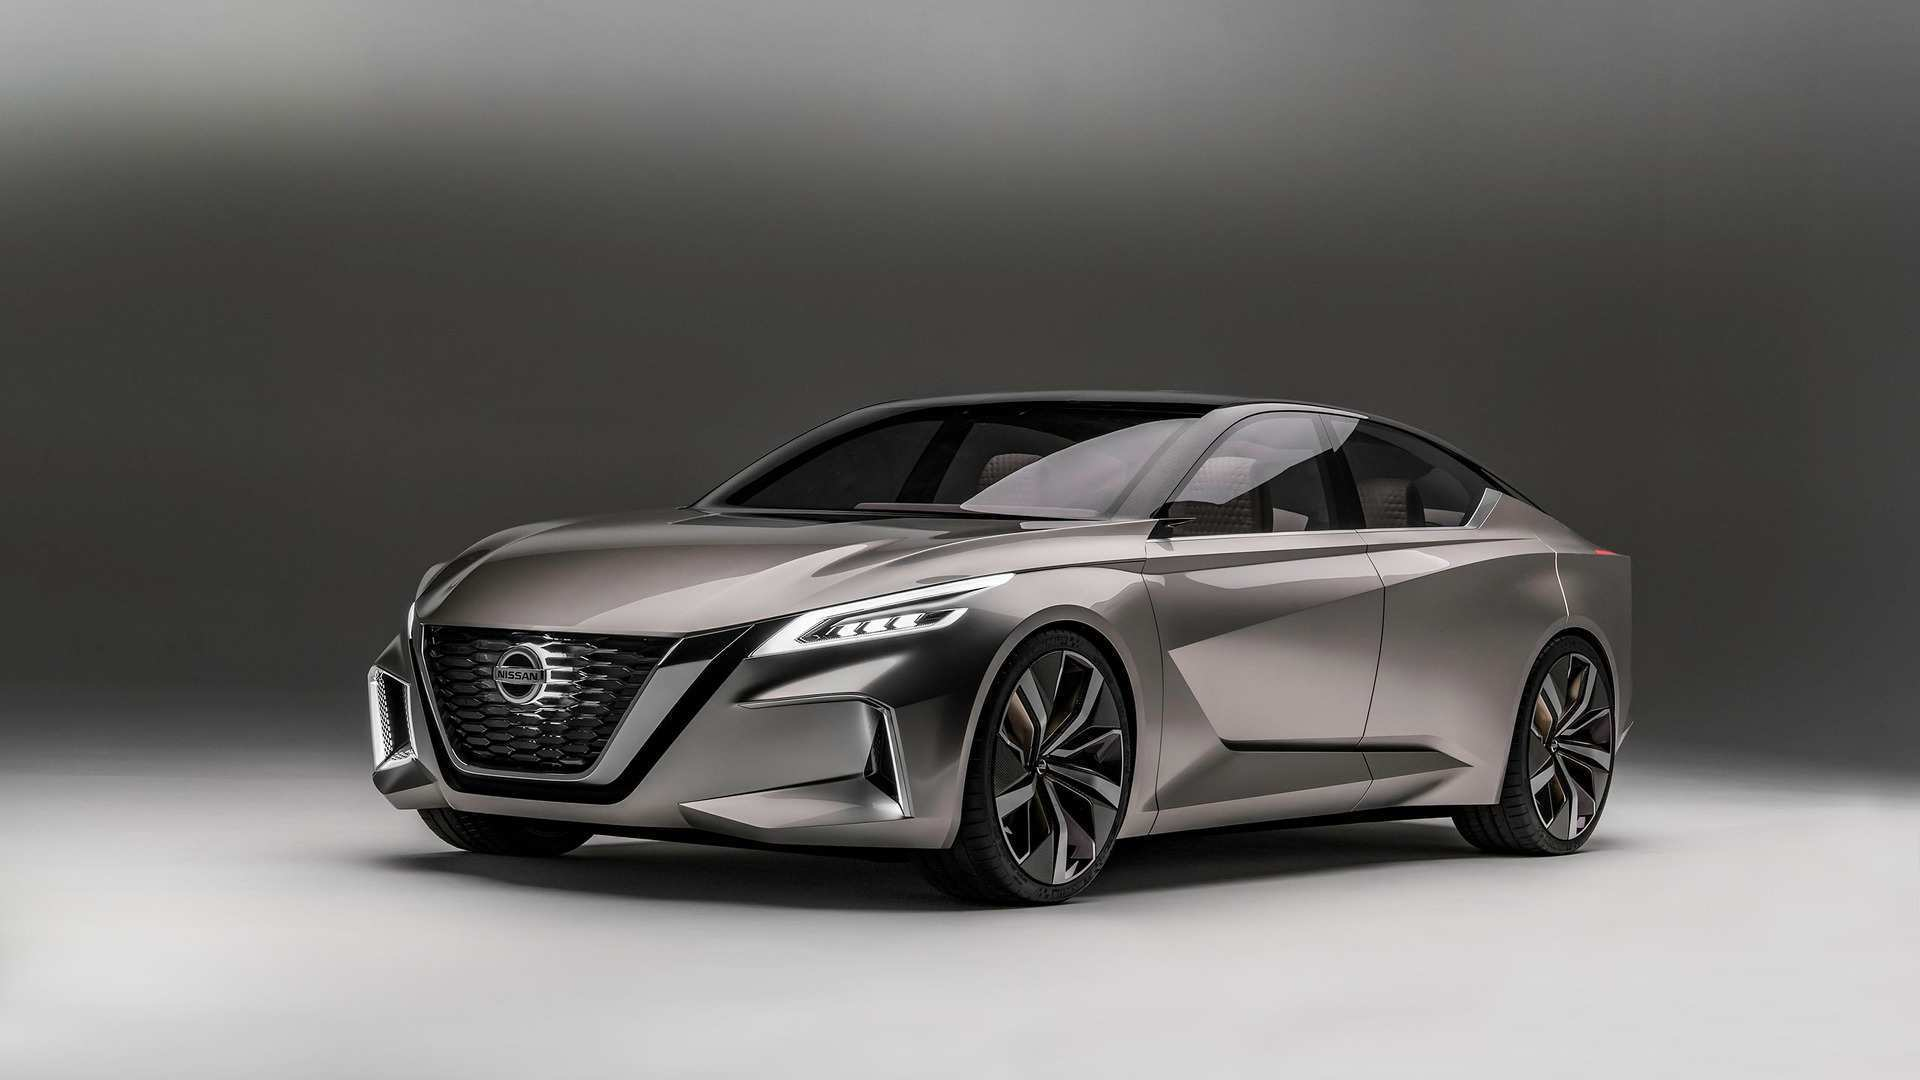 45 Gallery of 2020 Nissan Maxima New Concept Engine for 2020 Nissan Maxima New Concept